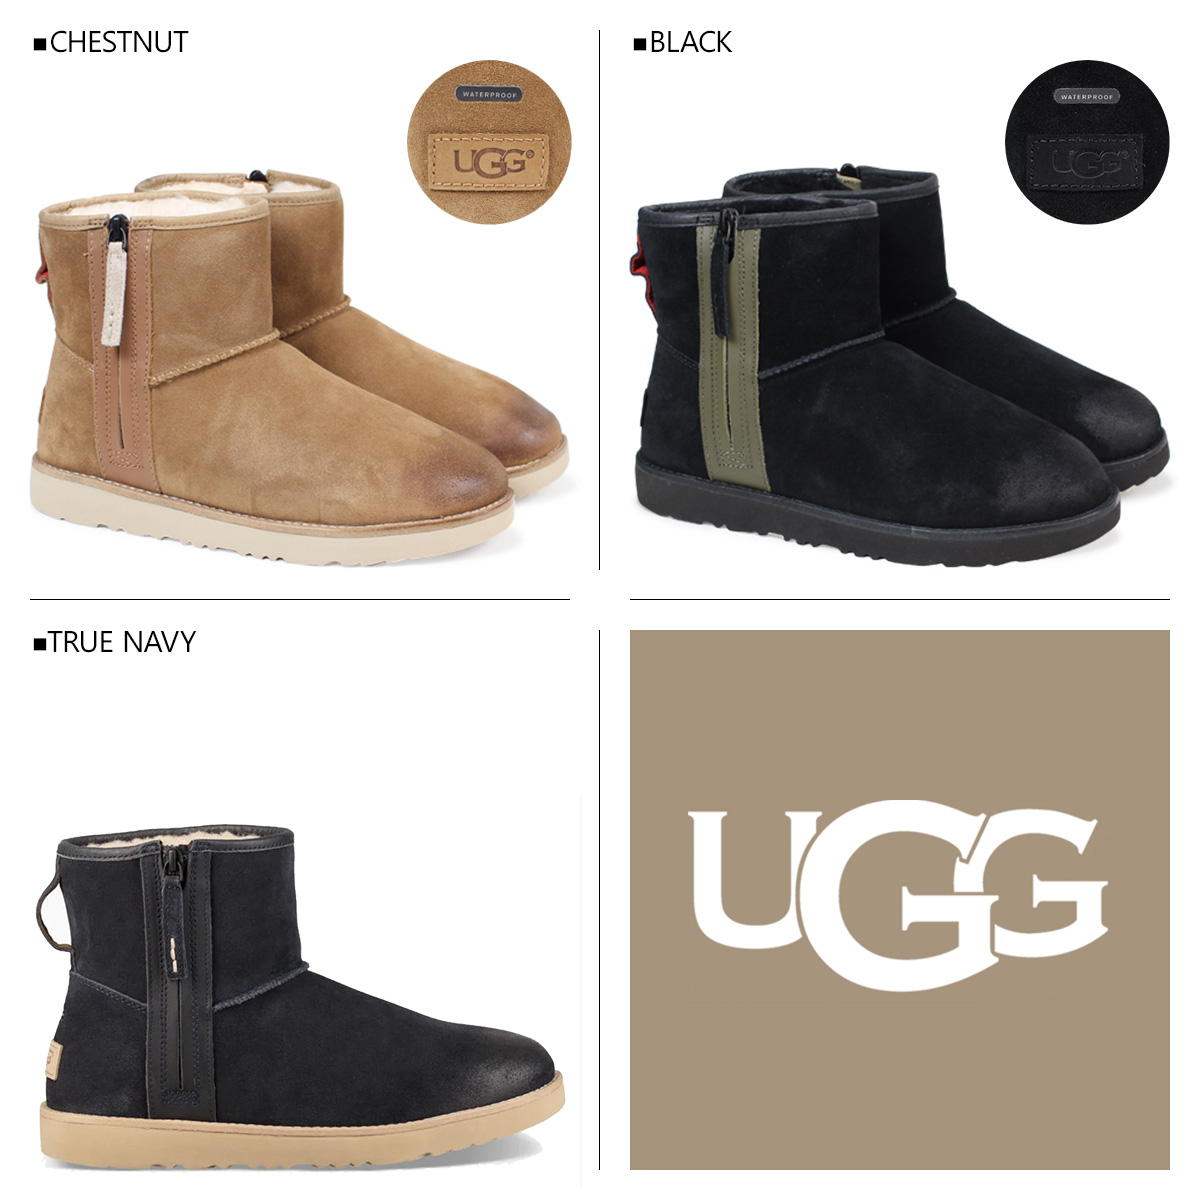 Allsports Ugg Mens Classic Mini Zip Waterproof アグクラシックミニ